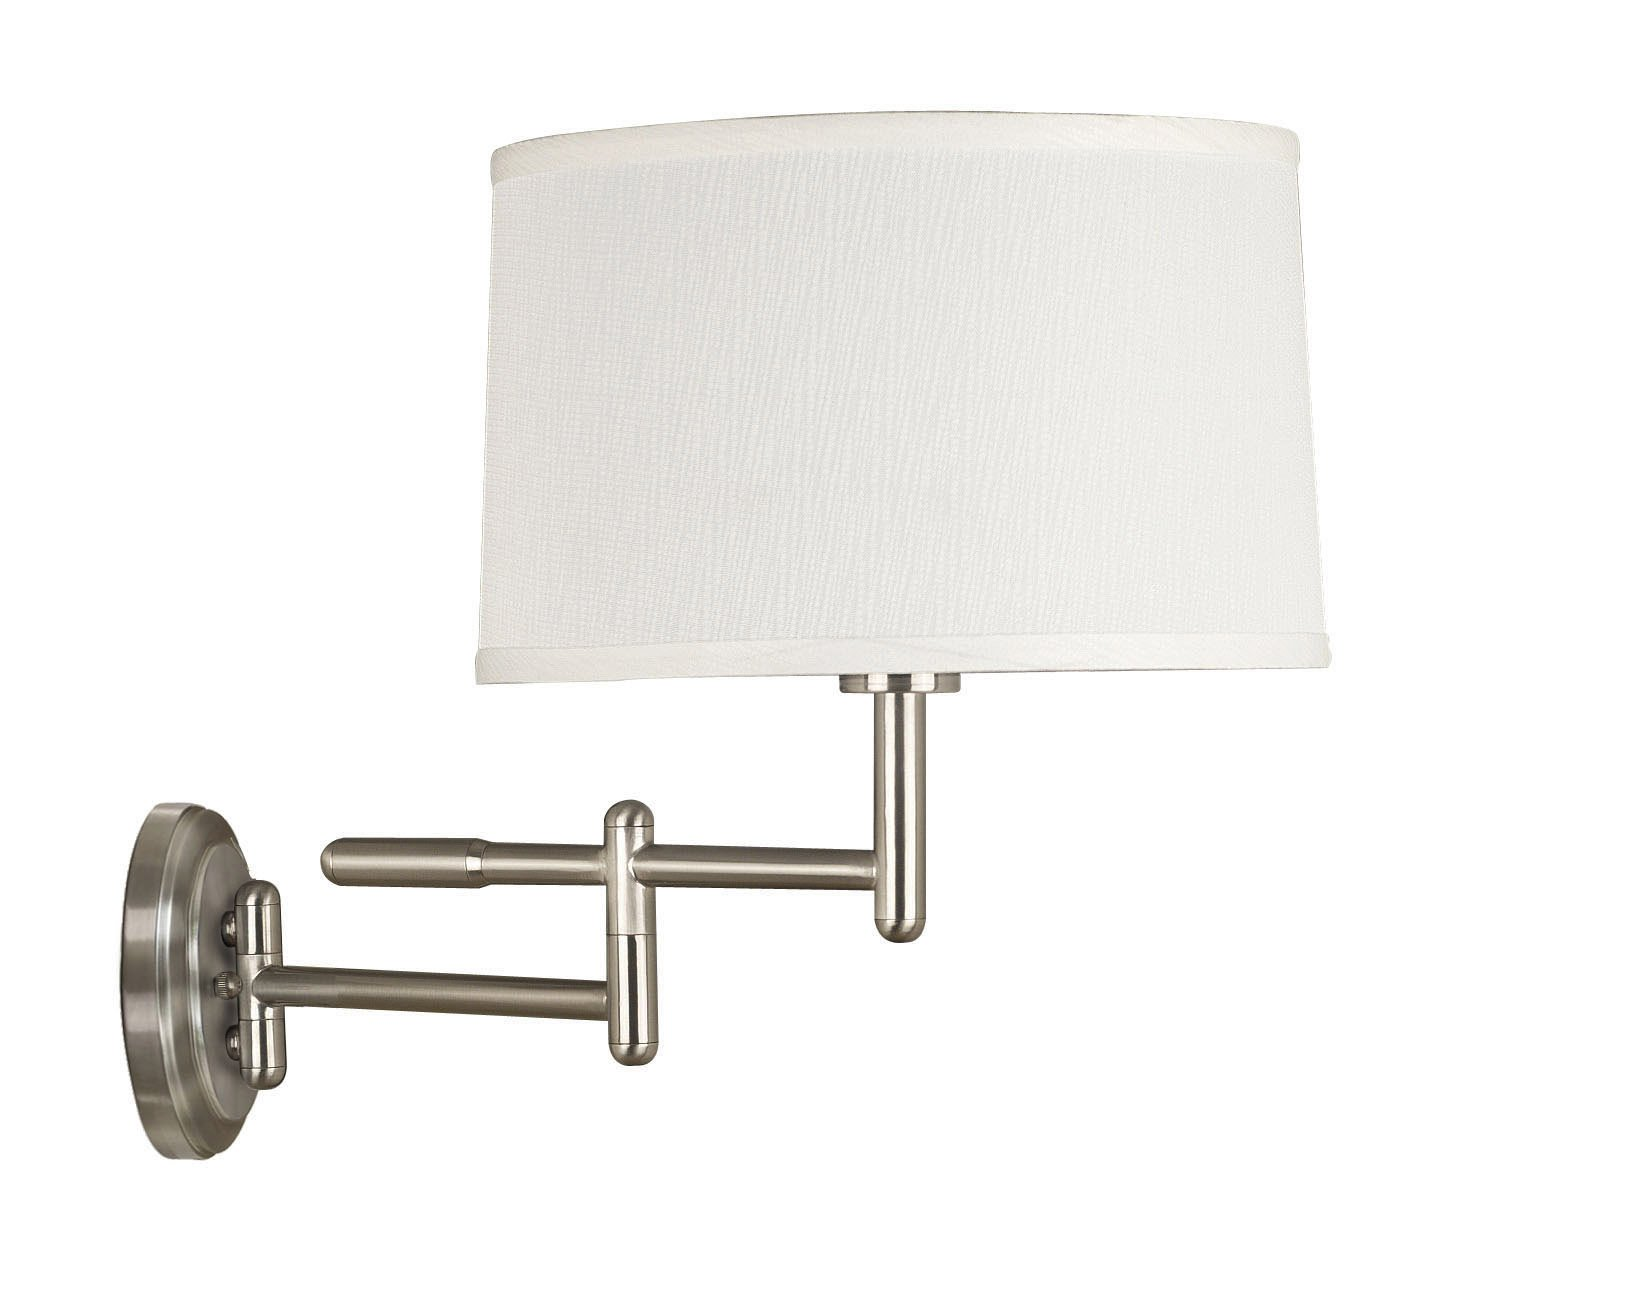 Kenroy Home 20942BS Theta Wall Swing Arm Lamp, Brushed Steel Finish